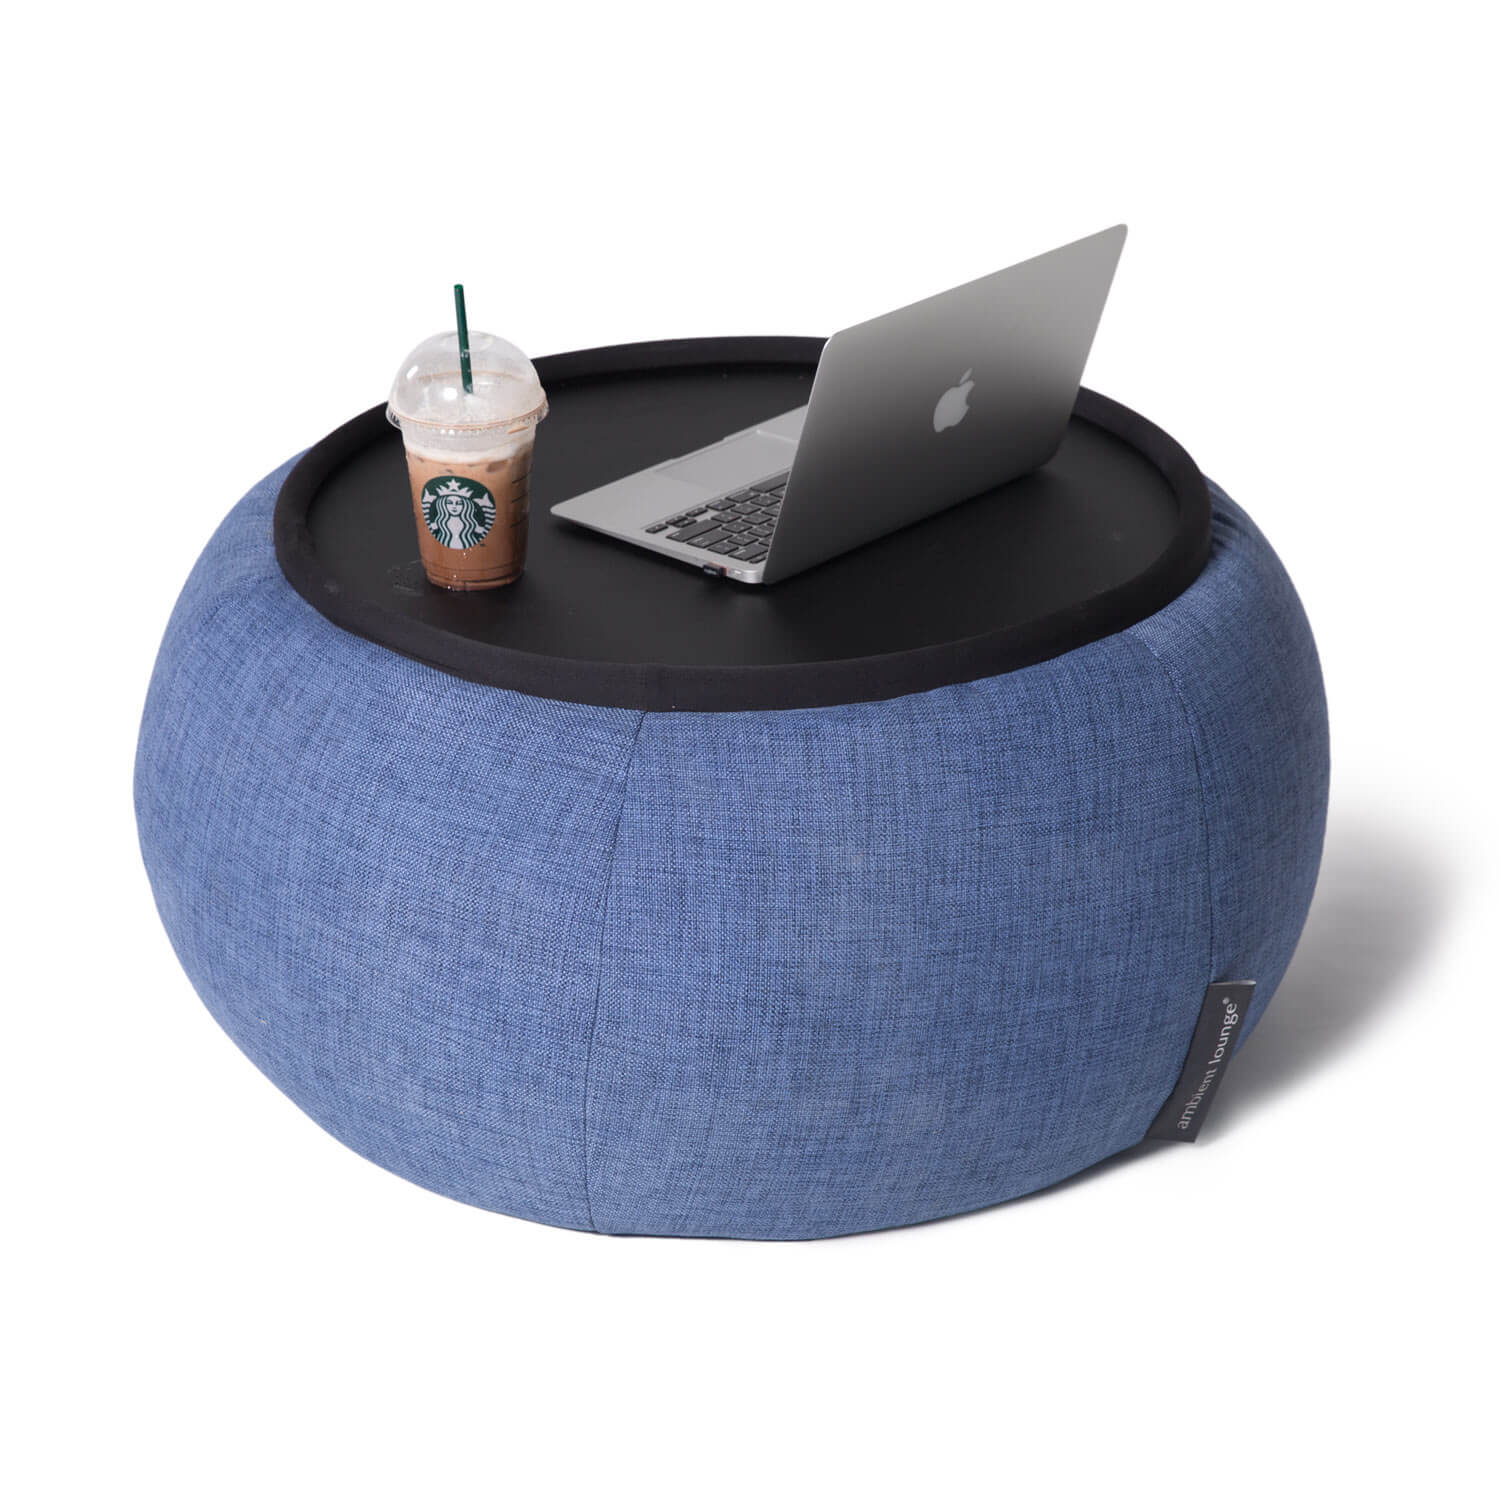 Indoor Bean Bag Table Versa Table Blue Jazz